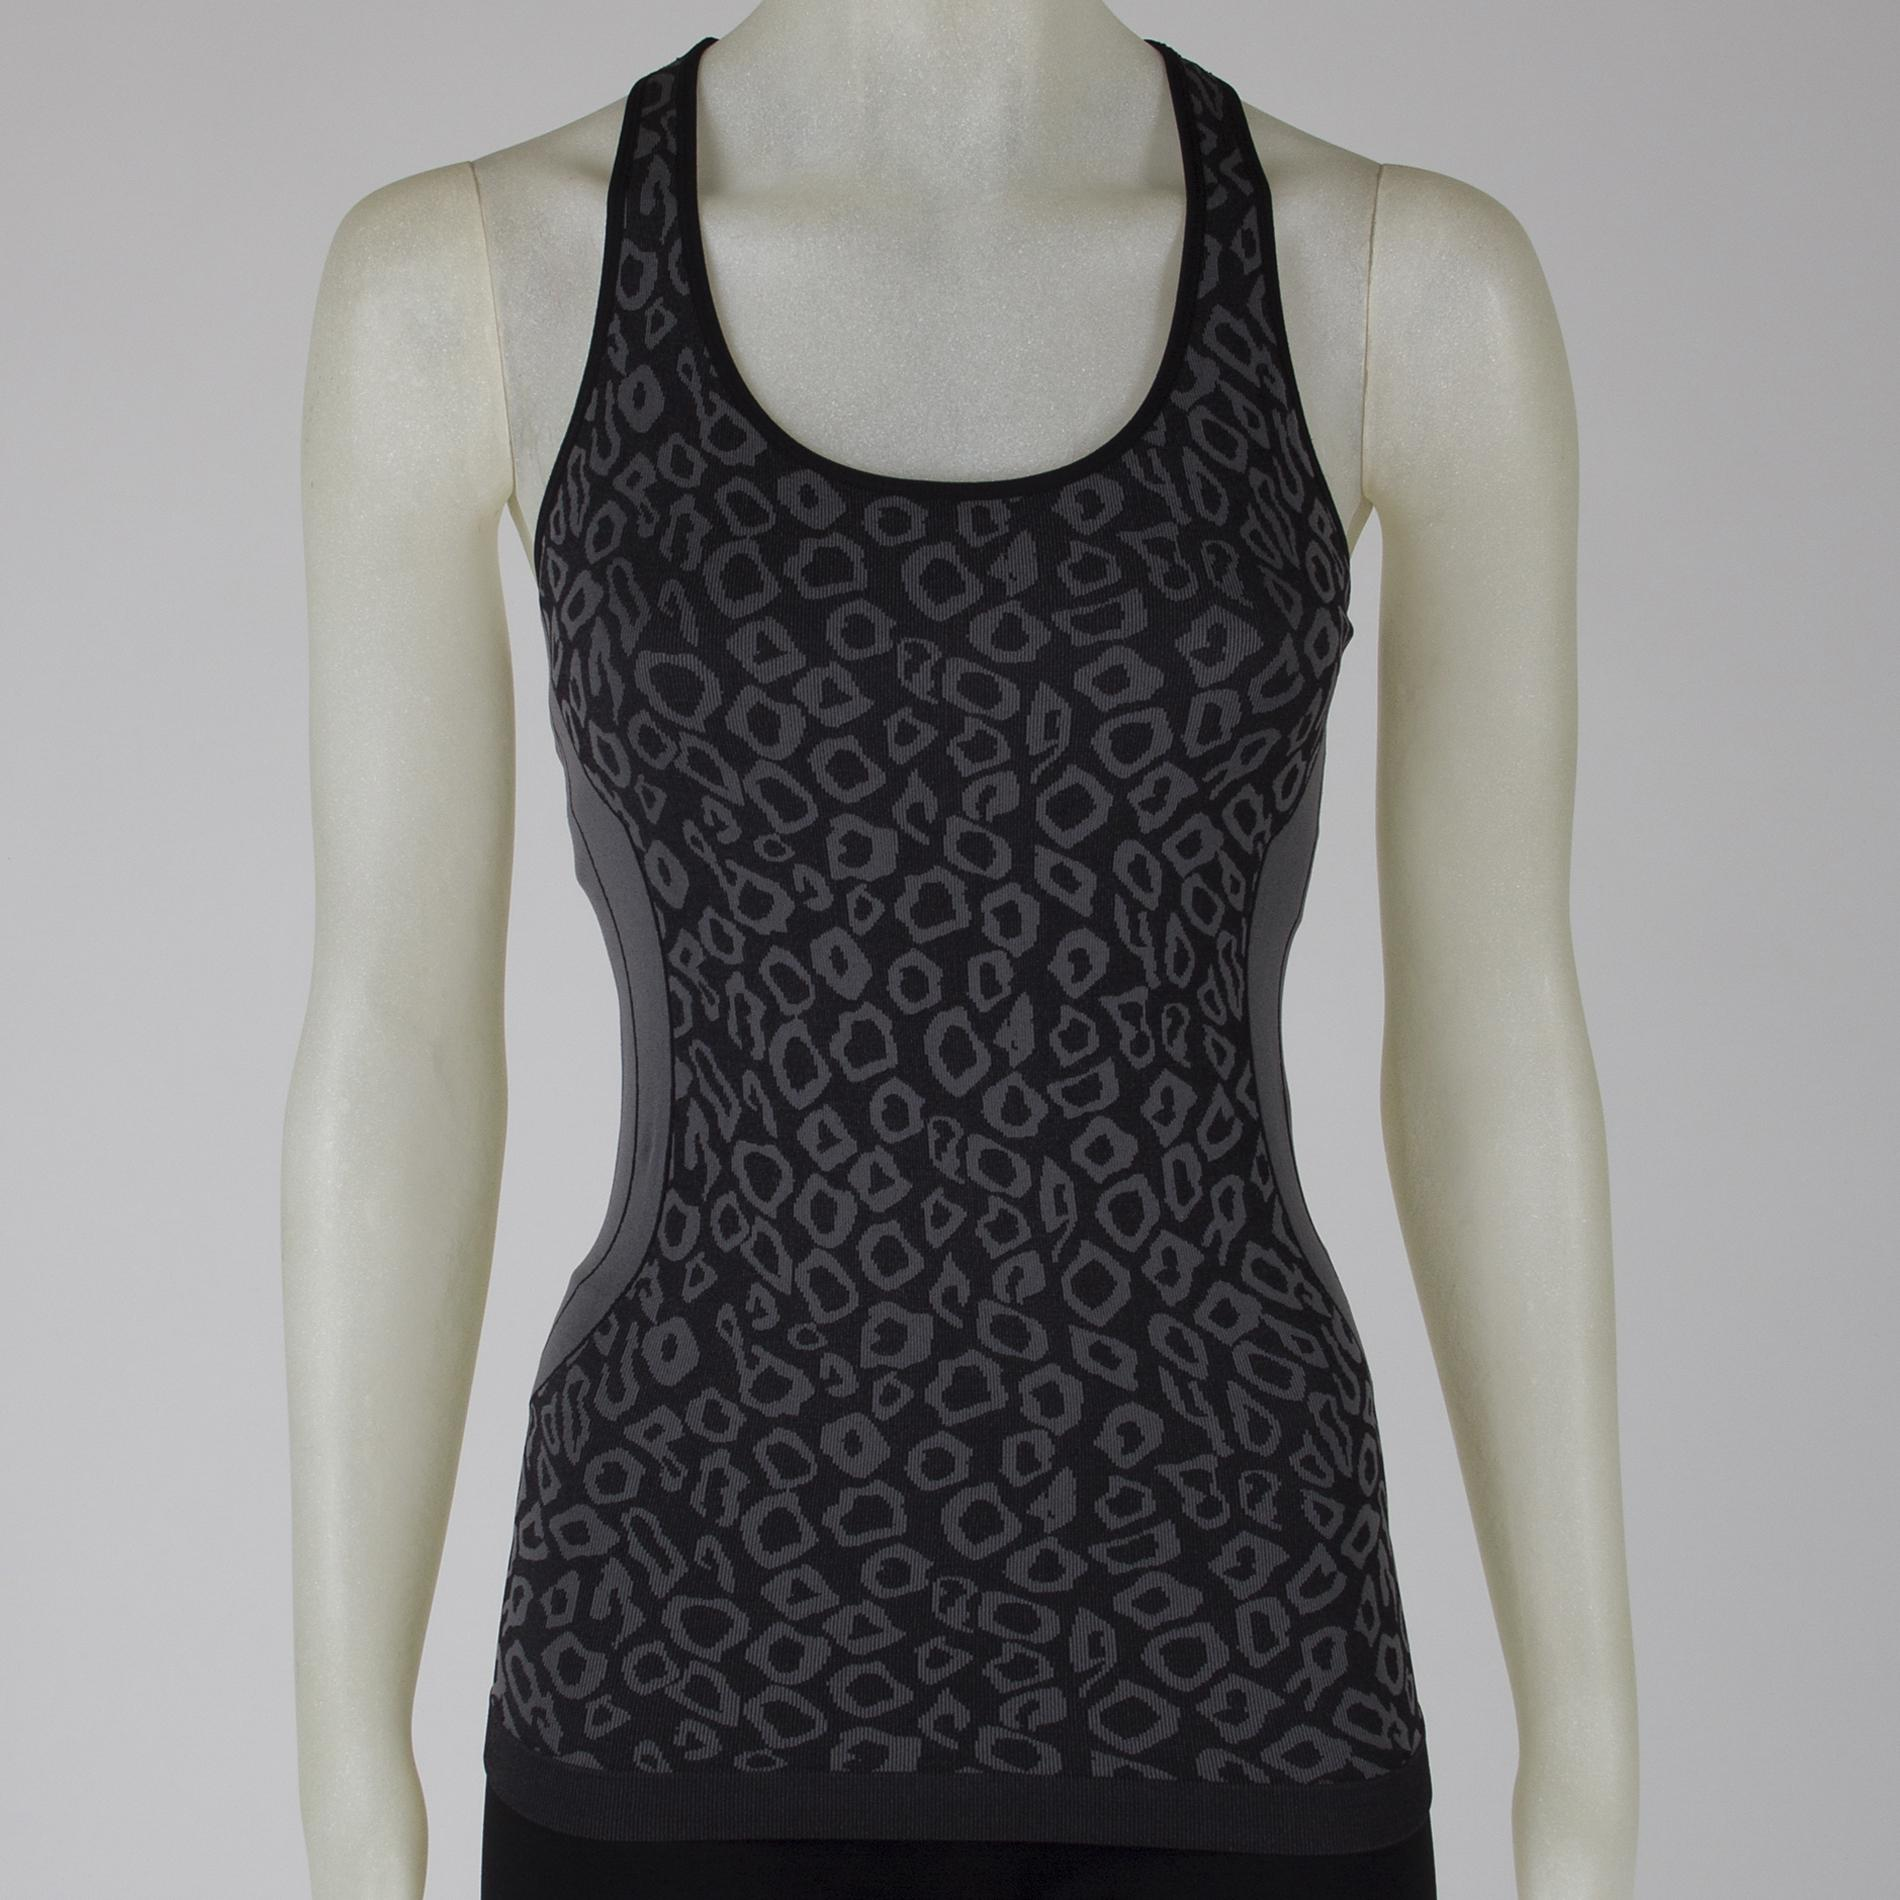 Everlast® Women's Tank Top - Animal Jacquard at Sears.com